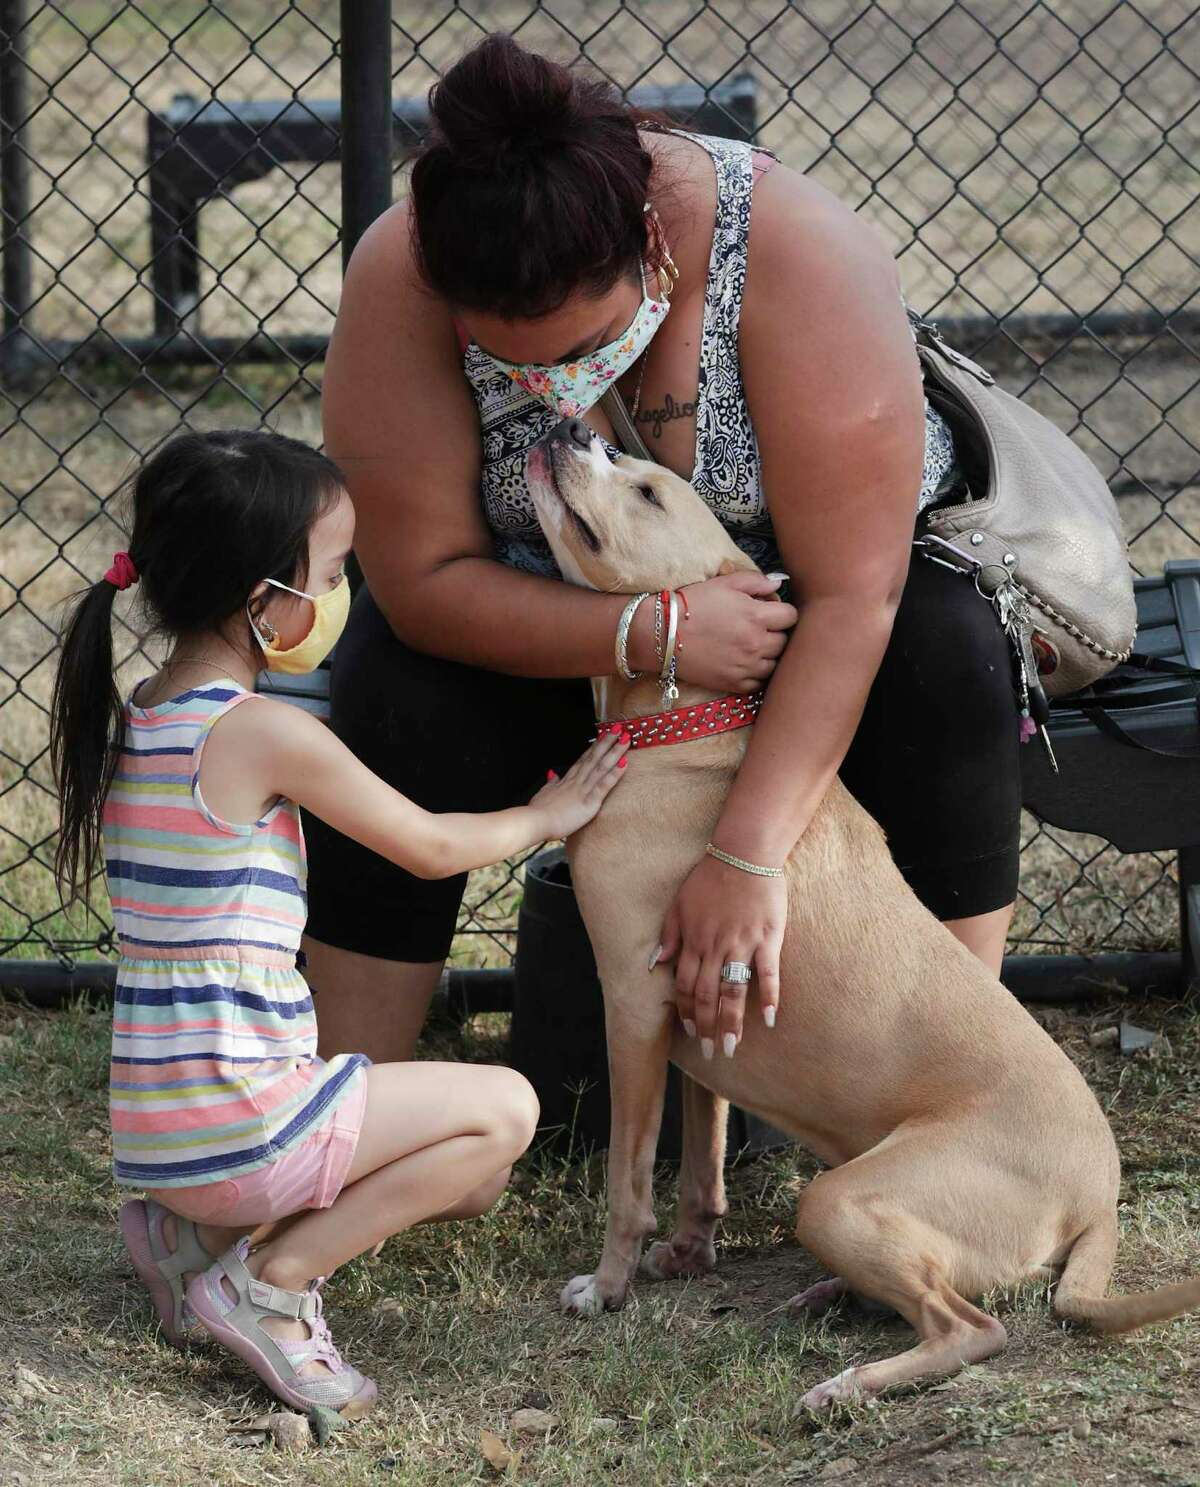 Perla Castellanos, center and her daughter Jocelyn Castellanos, 4, love on a dog they are thinking about adopting at Animal Care Services, on Friday, Nov. 6, 2020. The family is replacing a dog that passed away recently.